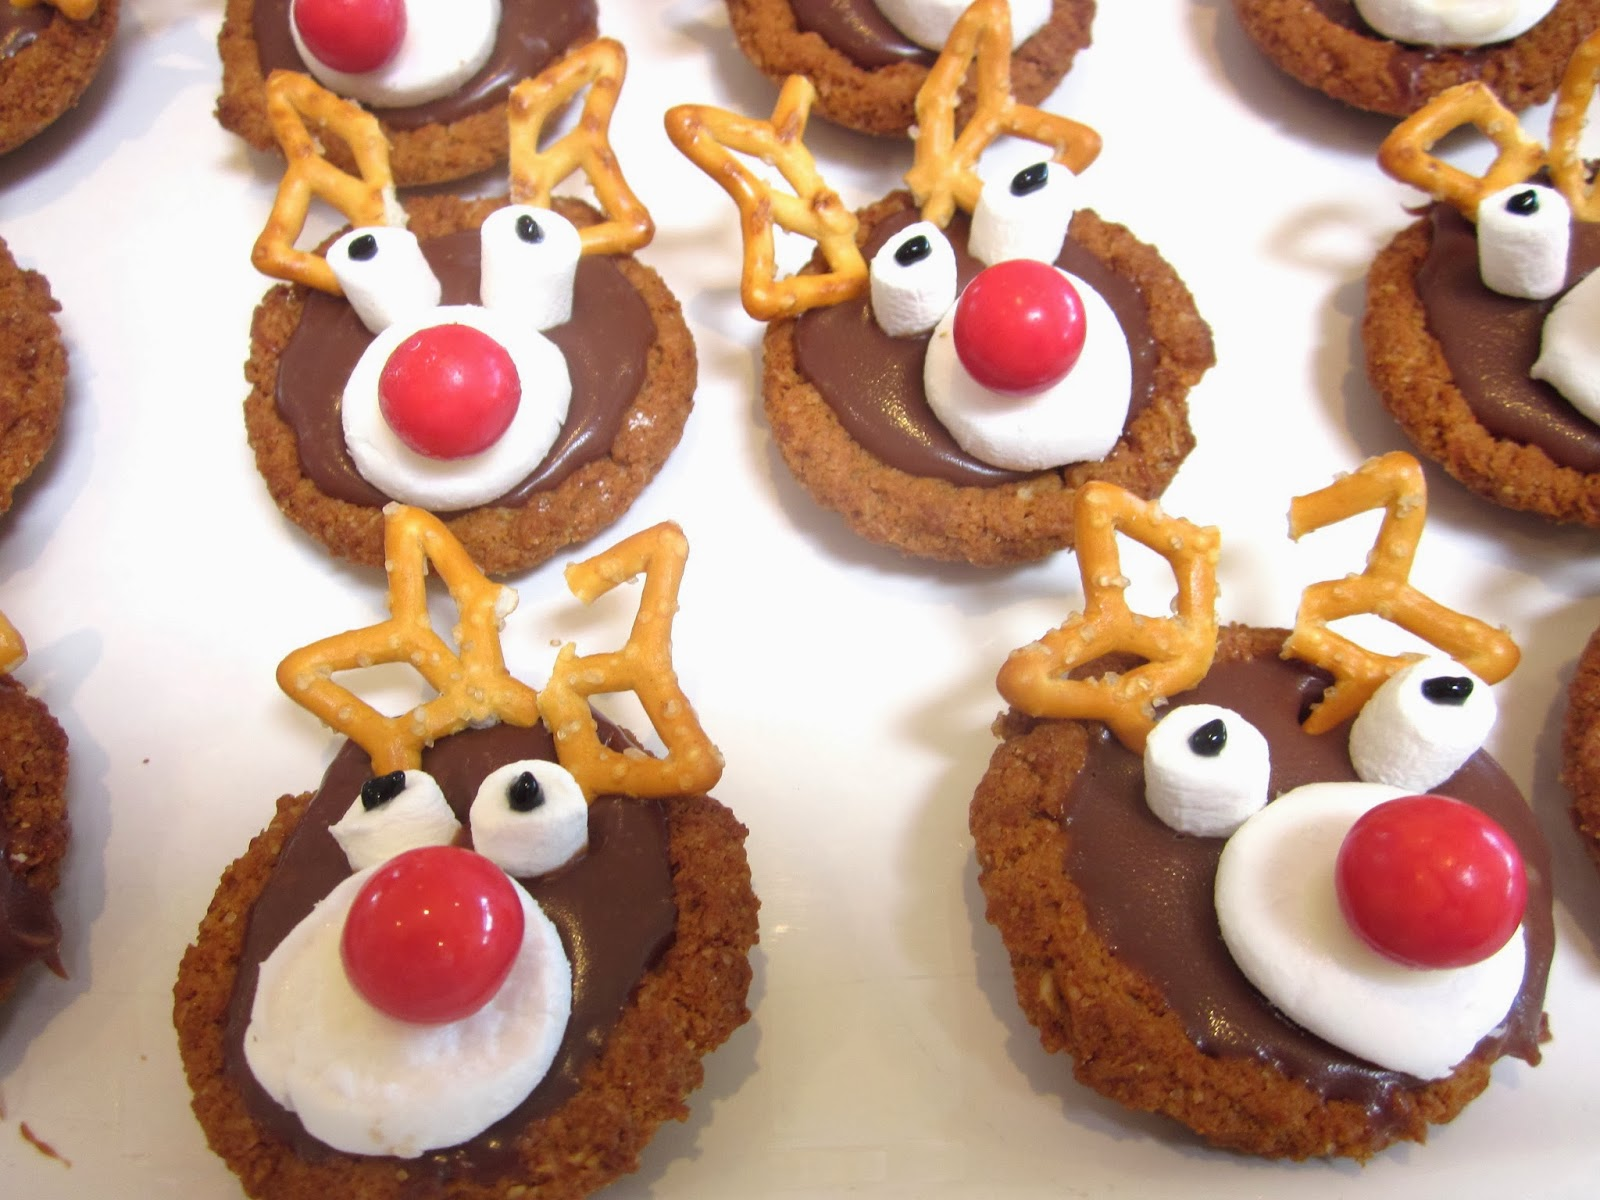 4When cookies are set but not completely dry press pretzels pieces onto cookies to create antlers 5Cut a jelly bean in half or use a candycoated chocolate candy for the nose 6To create the eyes use a white piece of candy or white decorative icing